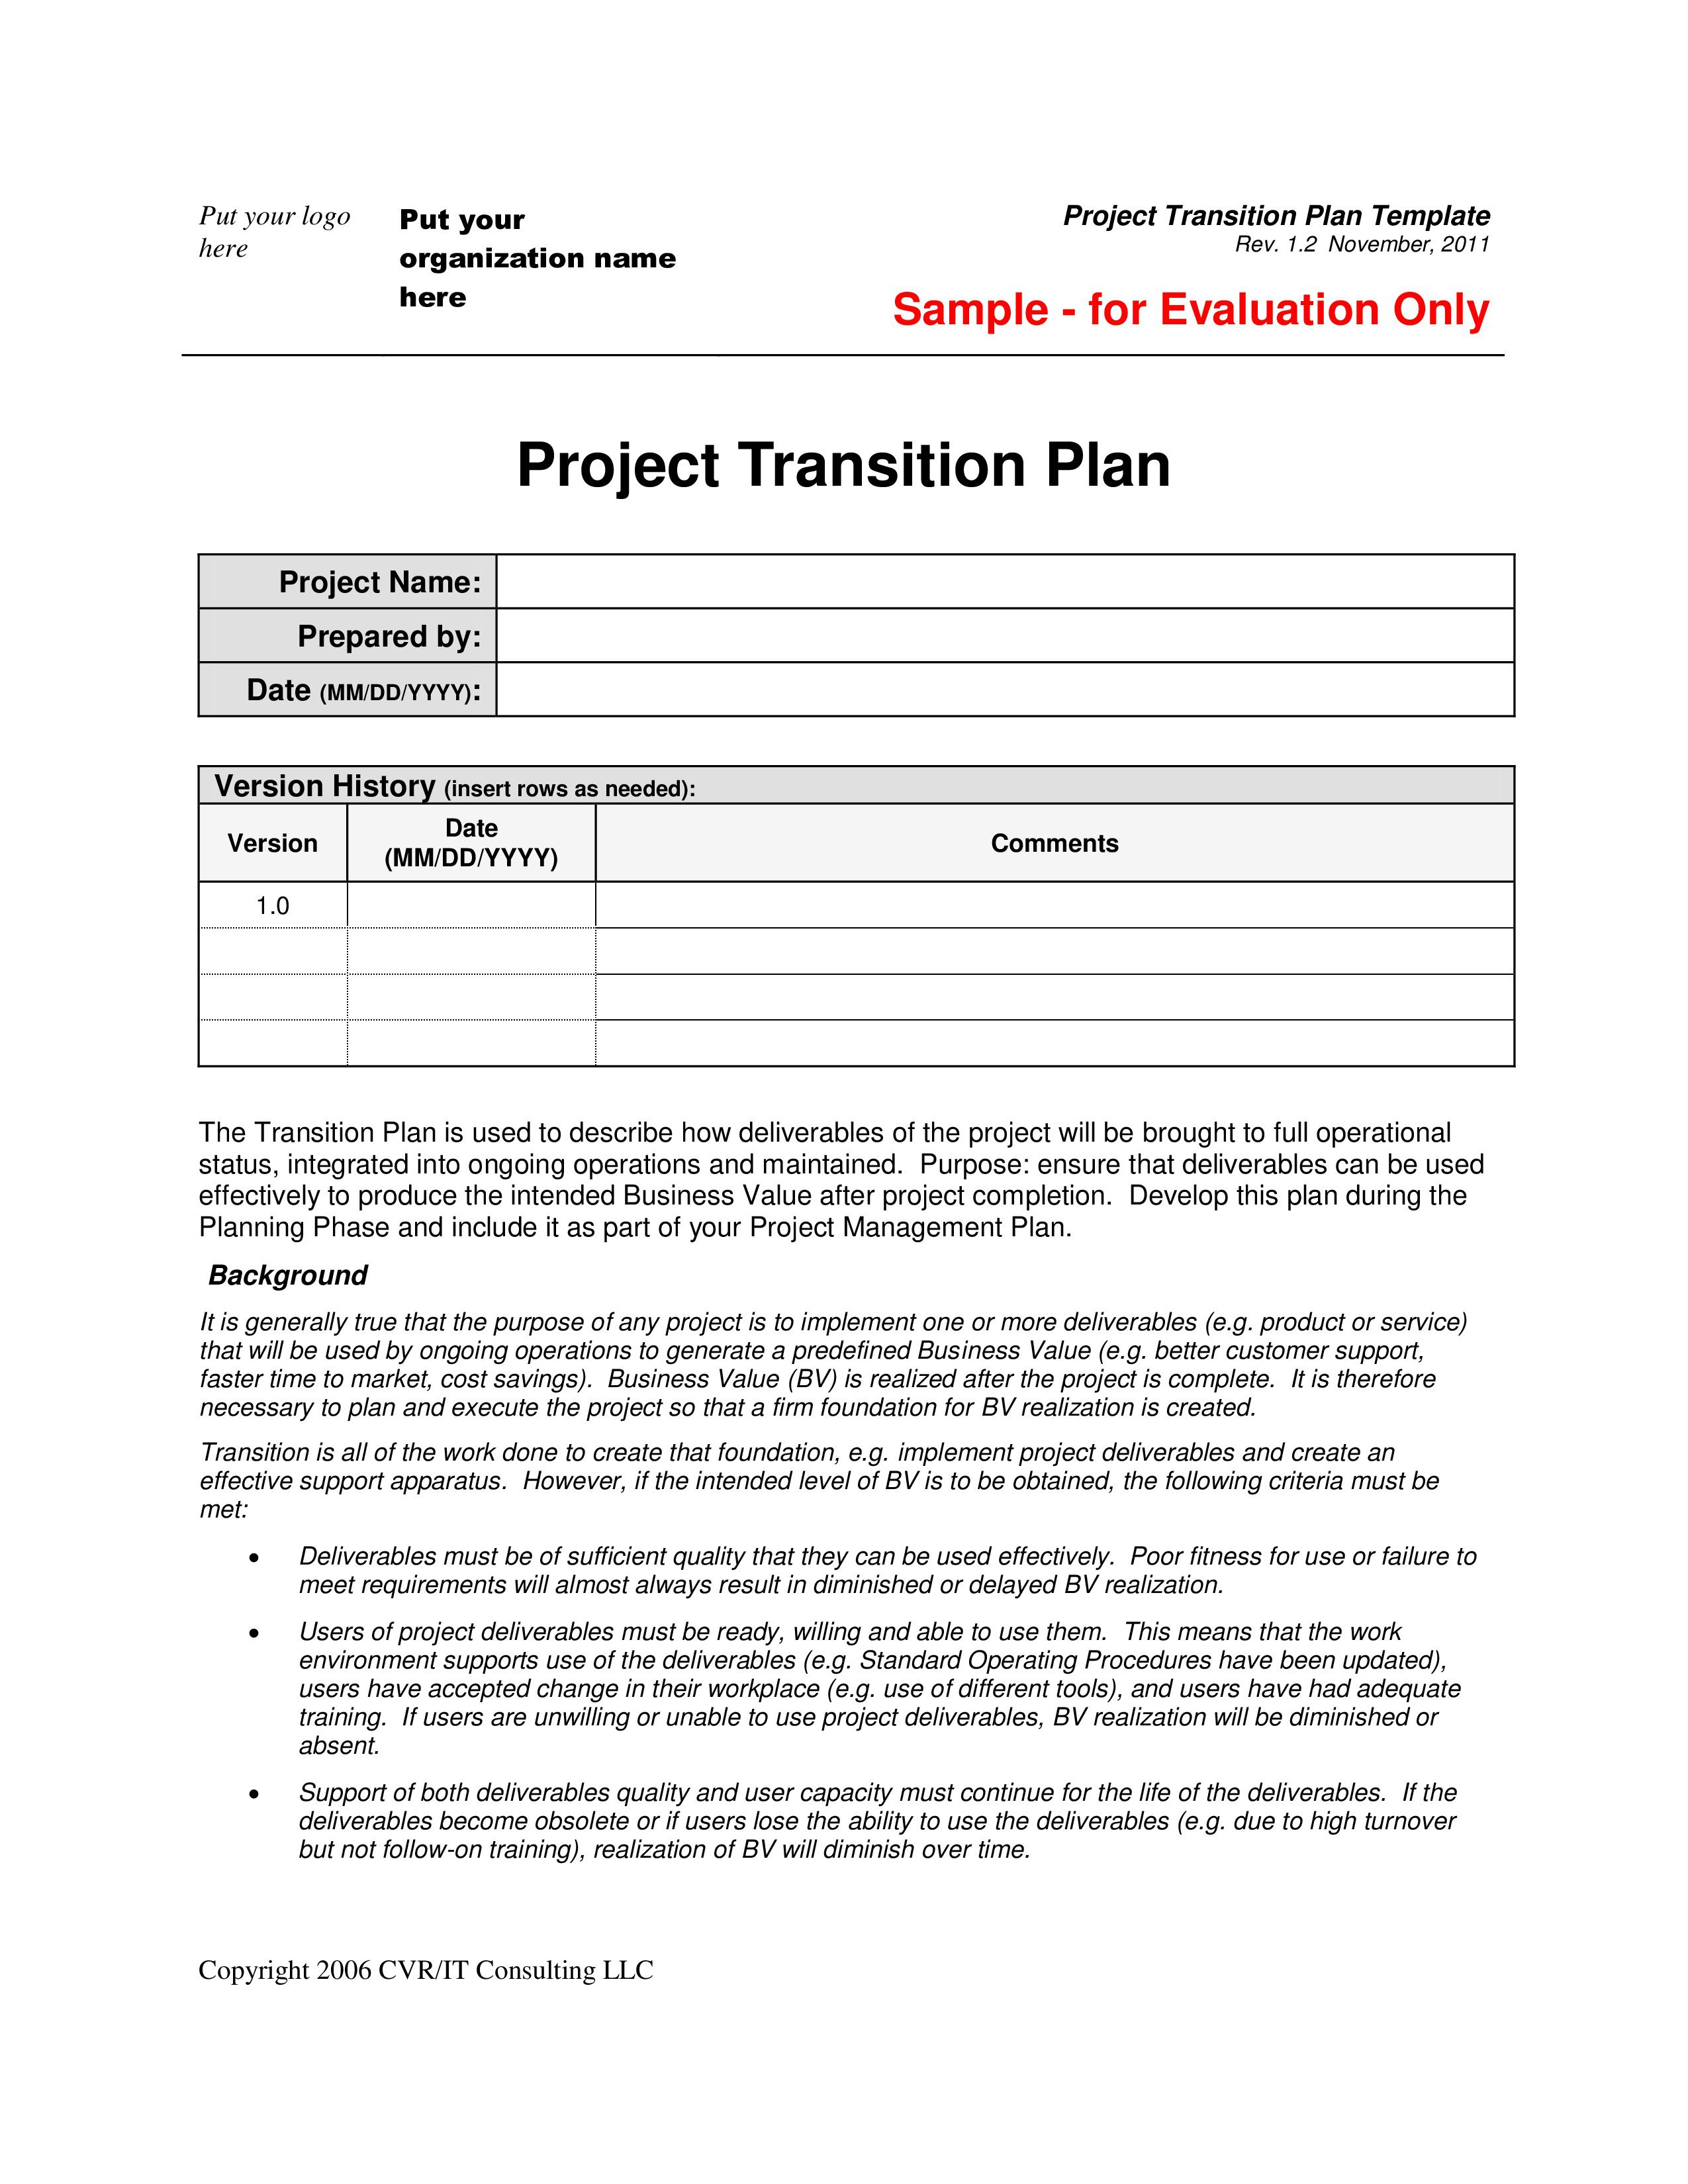 003 Fearsome Project Transition Plan Template High Resolution  Excel Download Software SampleFull